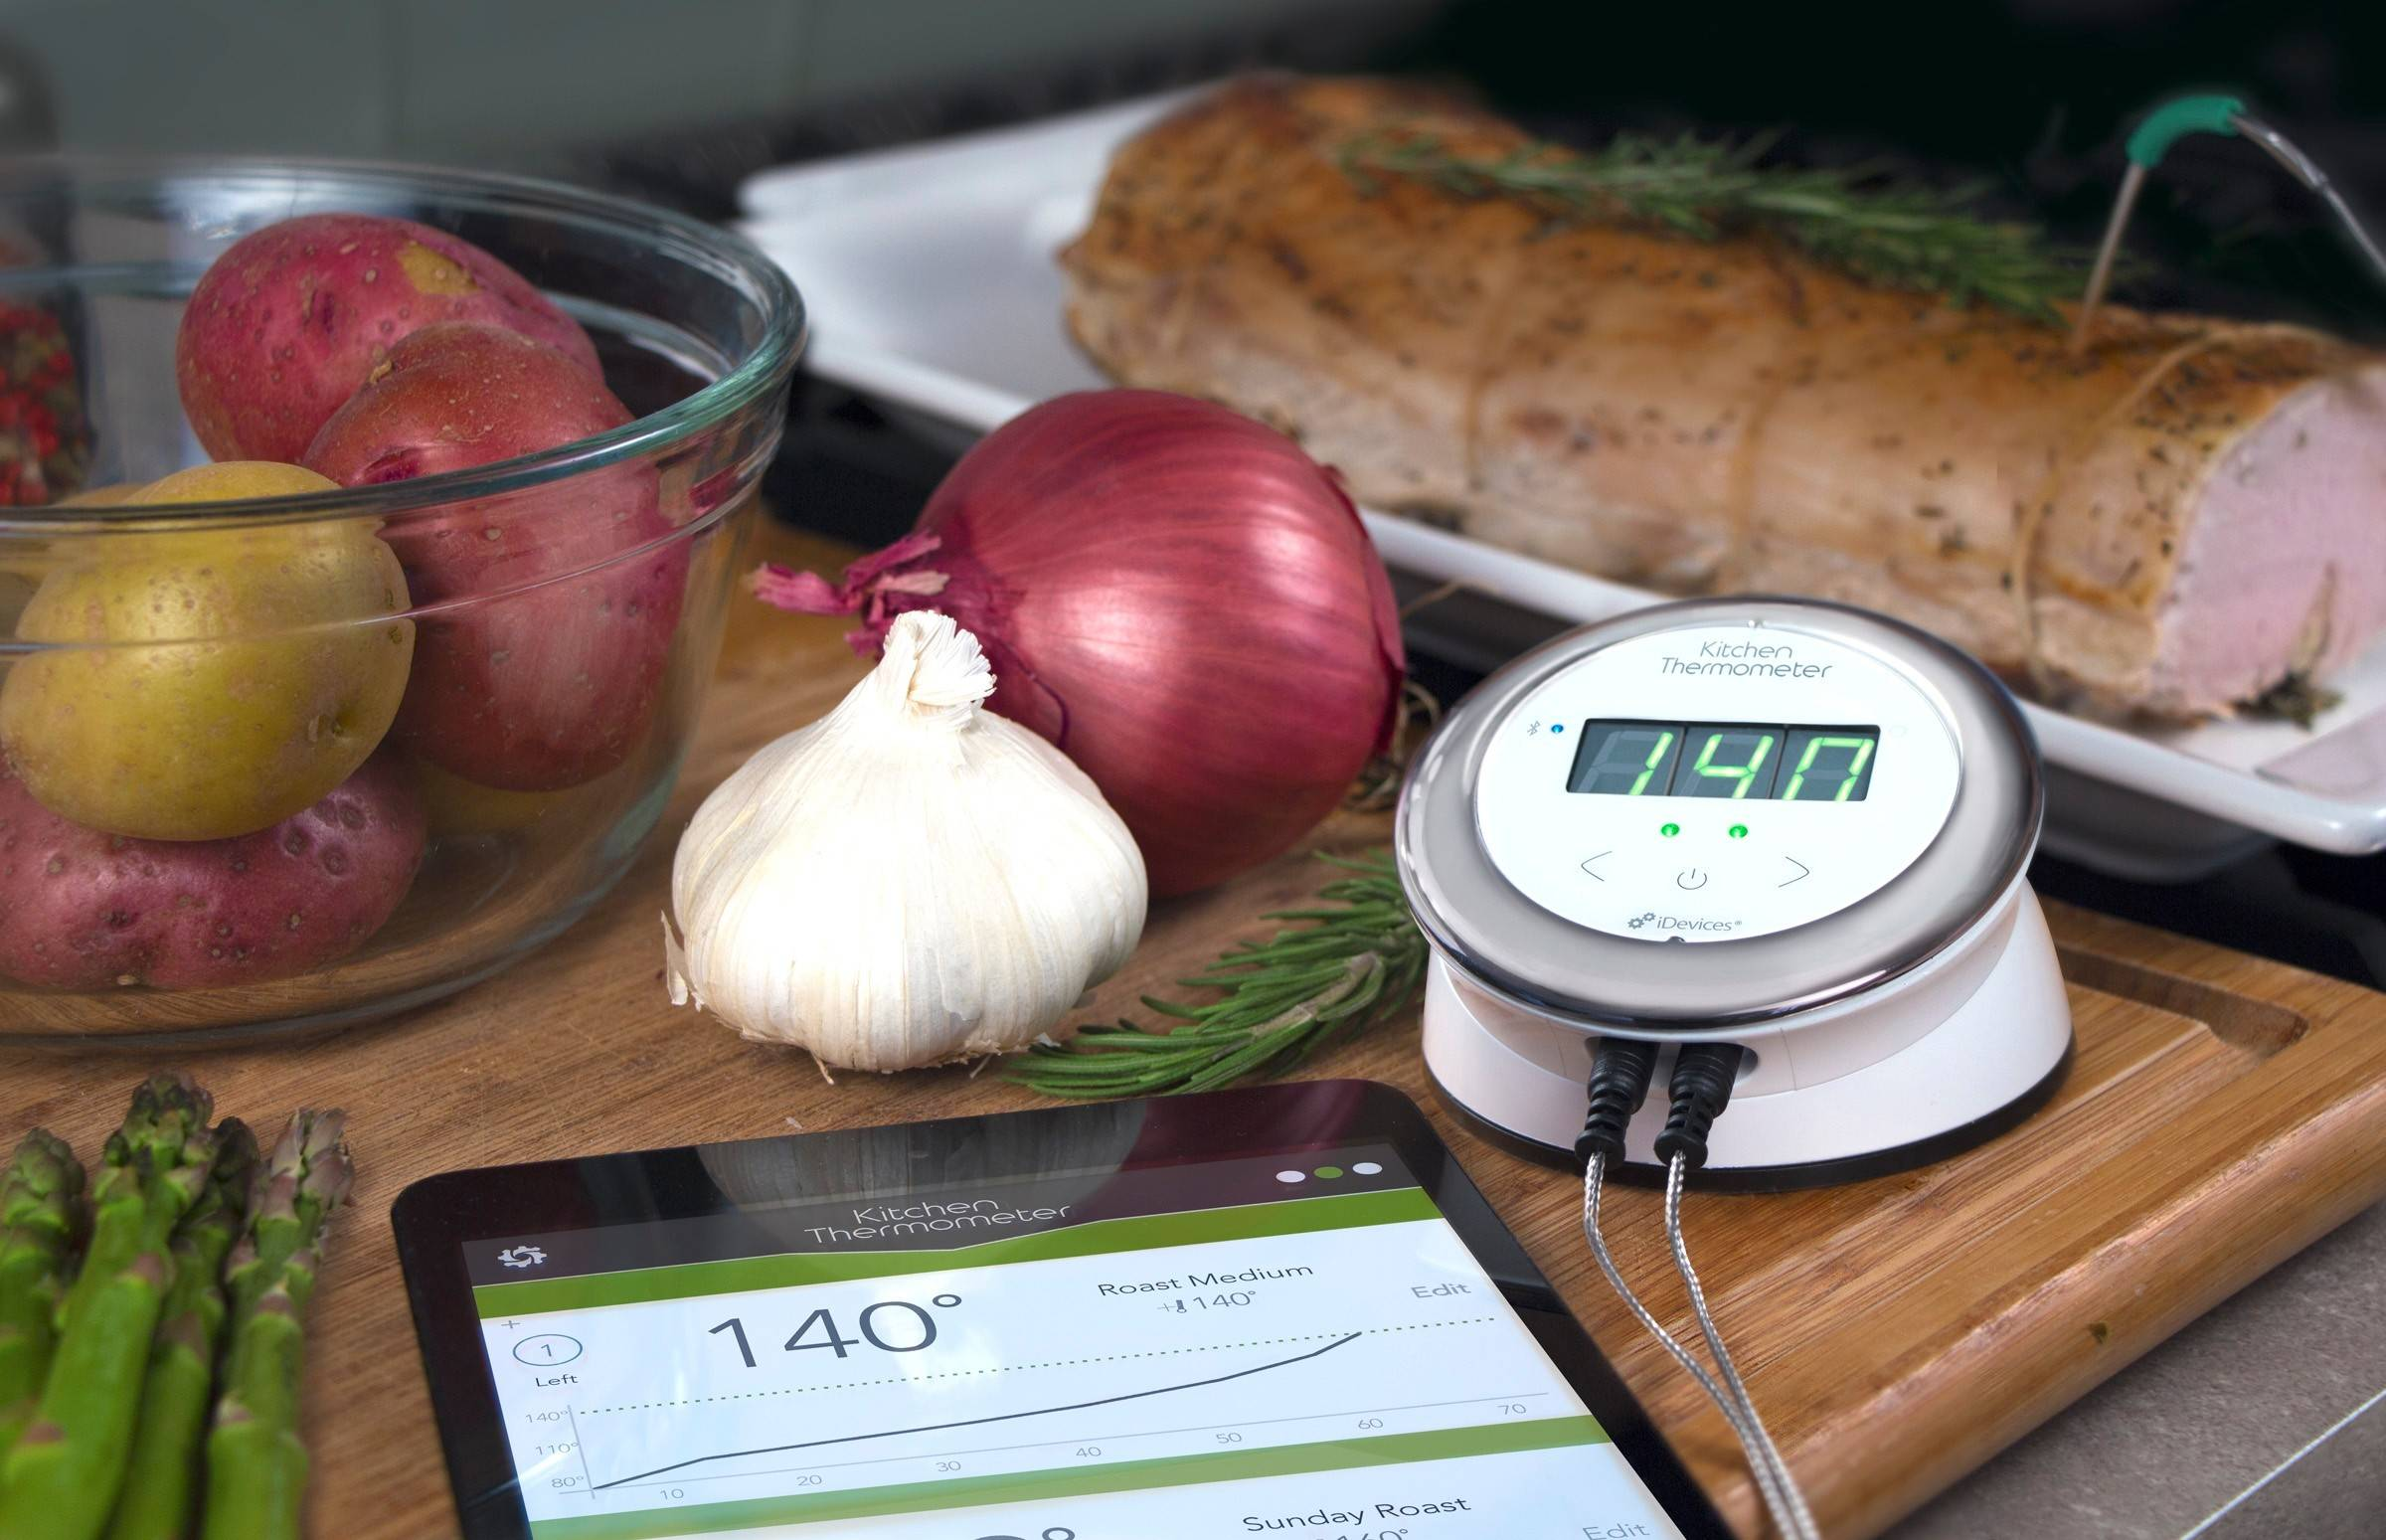 This kitchen thermometer is perfect for the cook with ADD, and I should know: I am one. Insert the probe into the meat you're cooking and Bluetooth Smart technology sends the temperature info to your iPhone, iPad or iTouch. You can attend to other meal prep or get caught up with E! News and not overcook dinner. There's also a model for the grill. $39.99. Available in May at iDevicesinc.com.